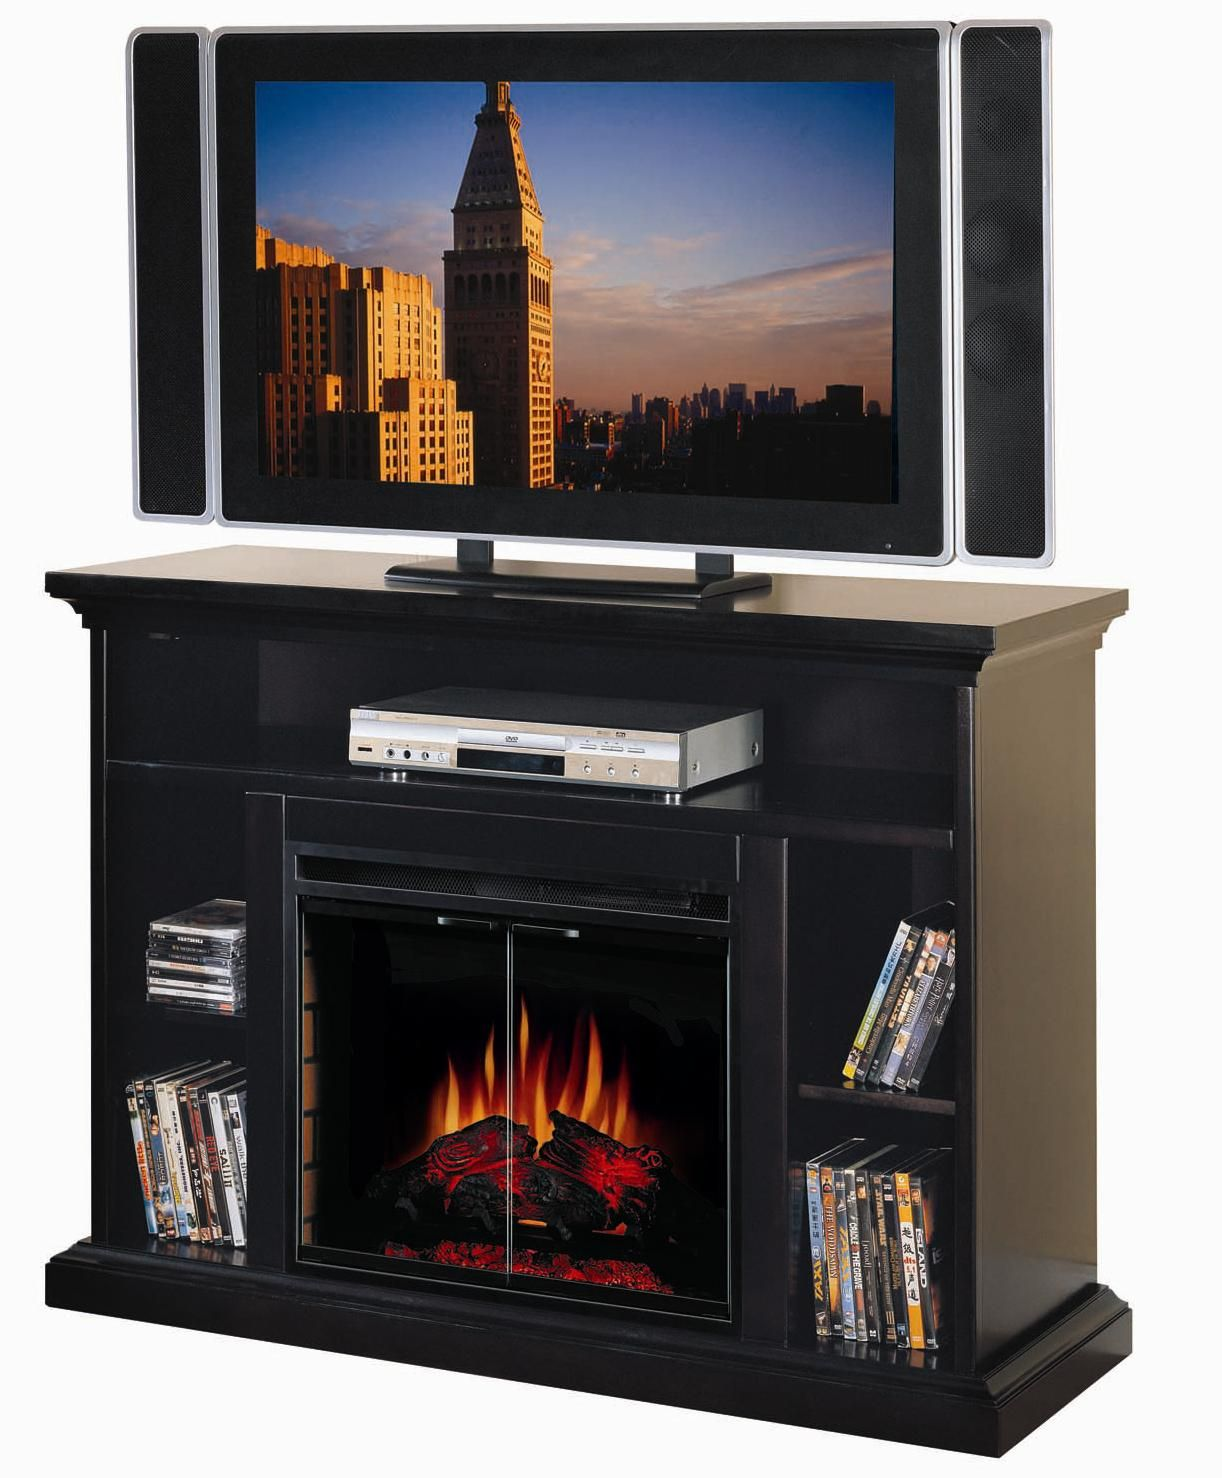 Beverly Home Theater Fireplace By Classicflame Future Home Home Appliances Home Theater Furniture